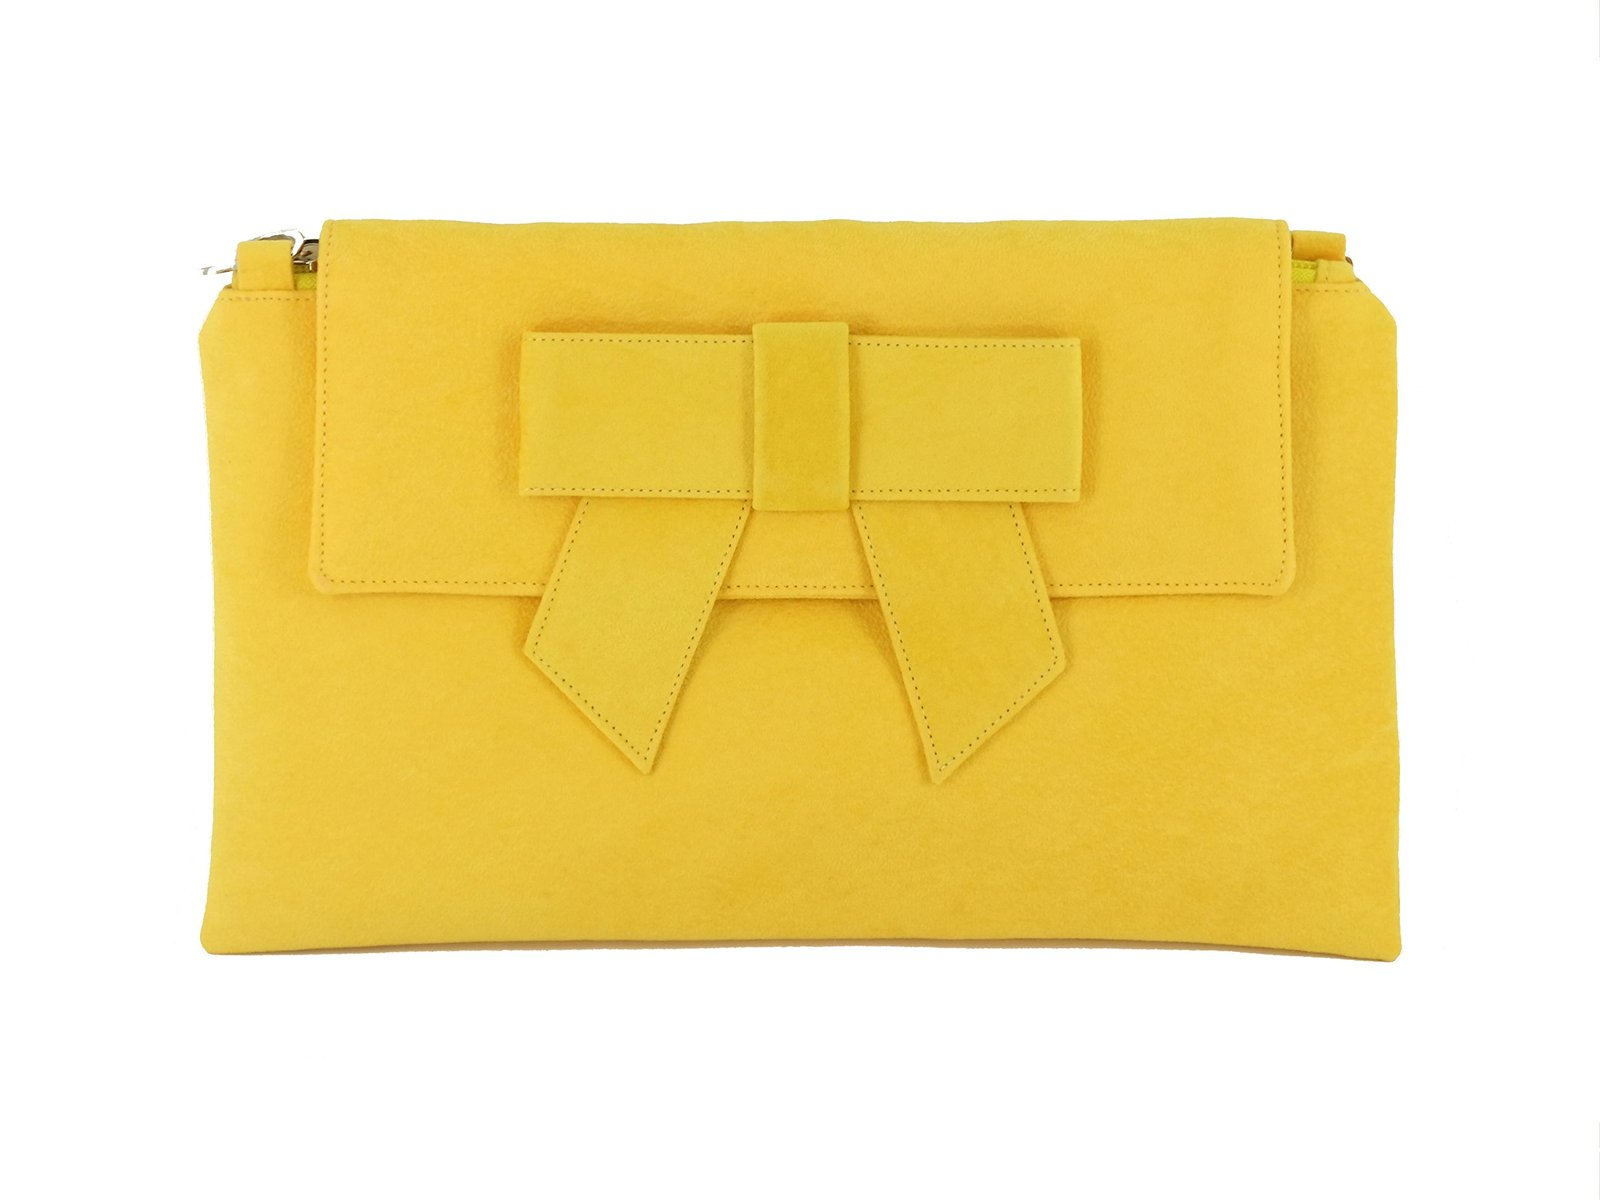 LONI Womens Clutch Bag Shoulder Bag Wristlet in Suede Faux Leather in Yellow